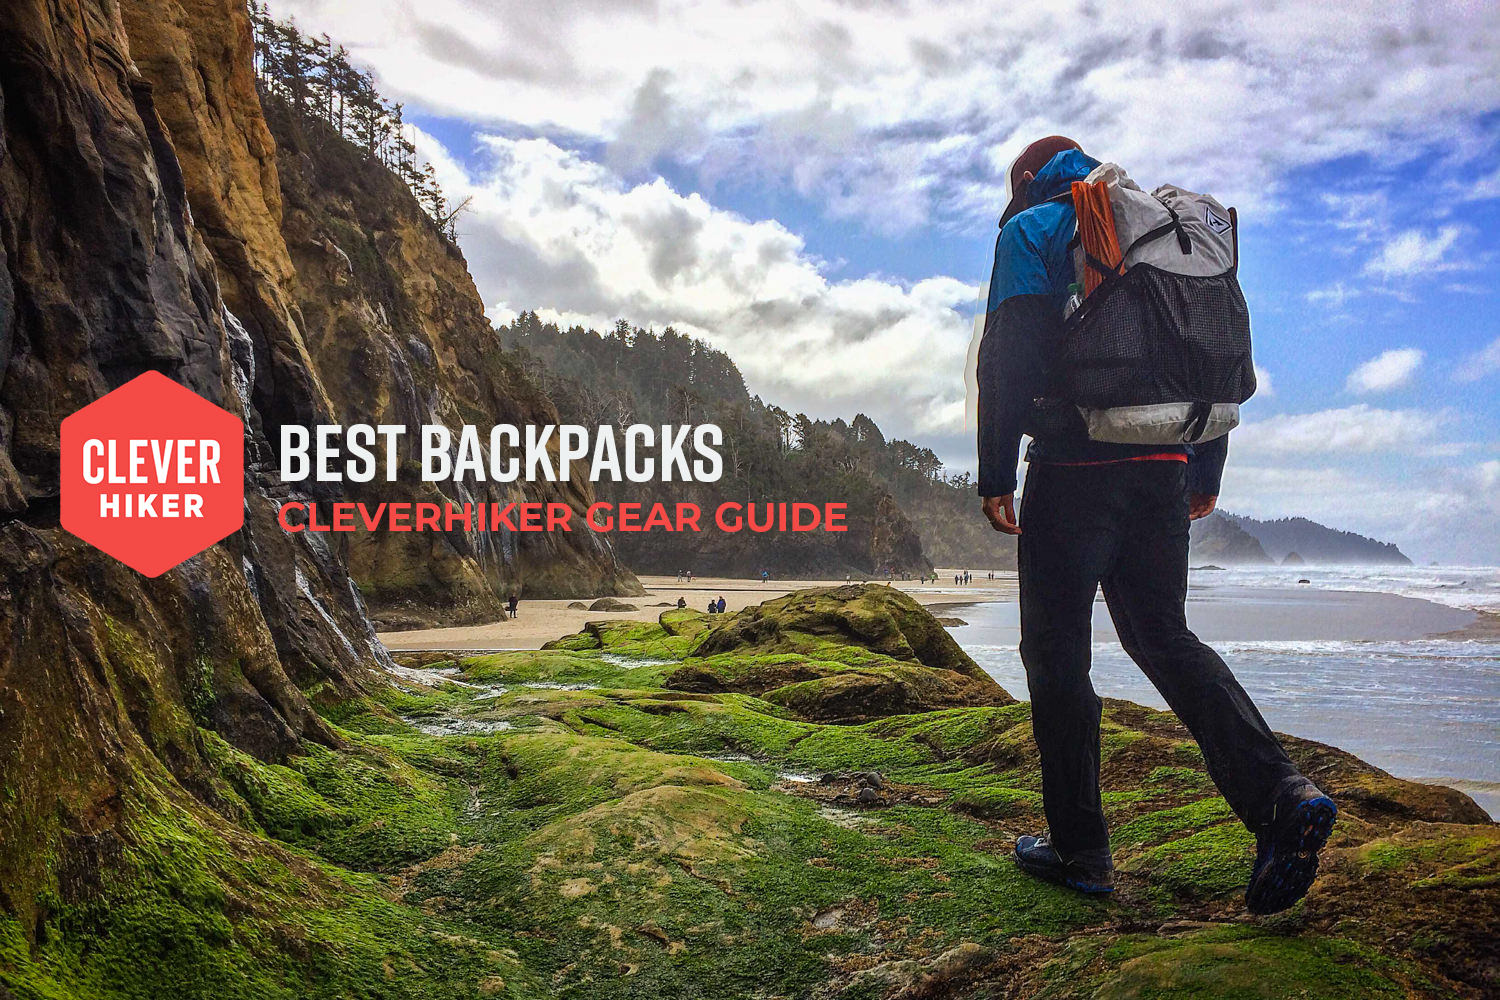 bestbackpacks2x3.jpg